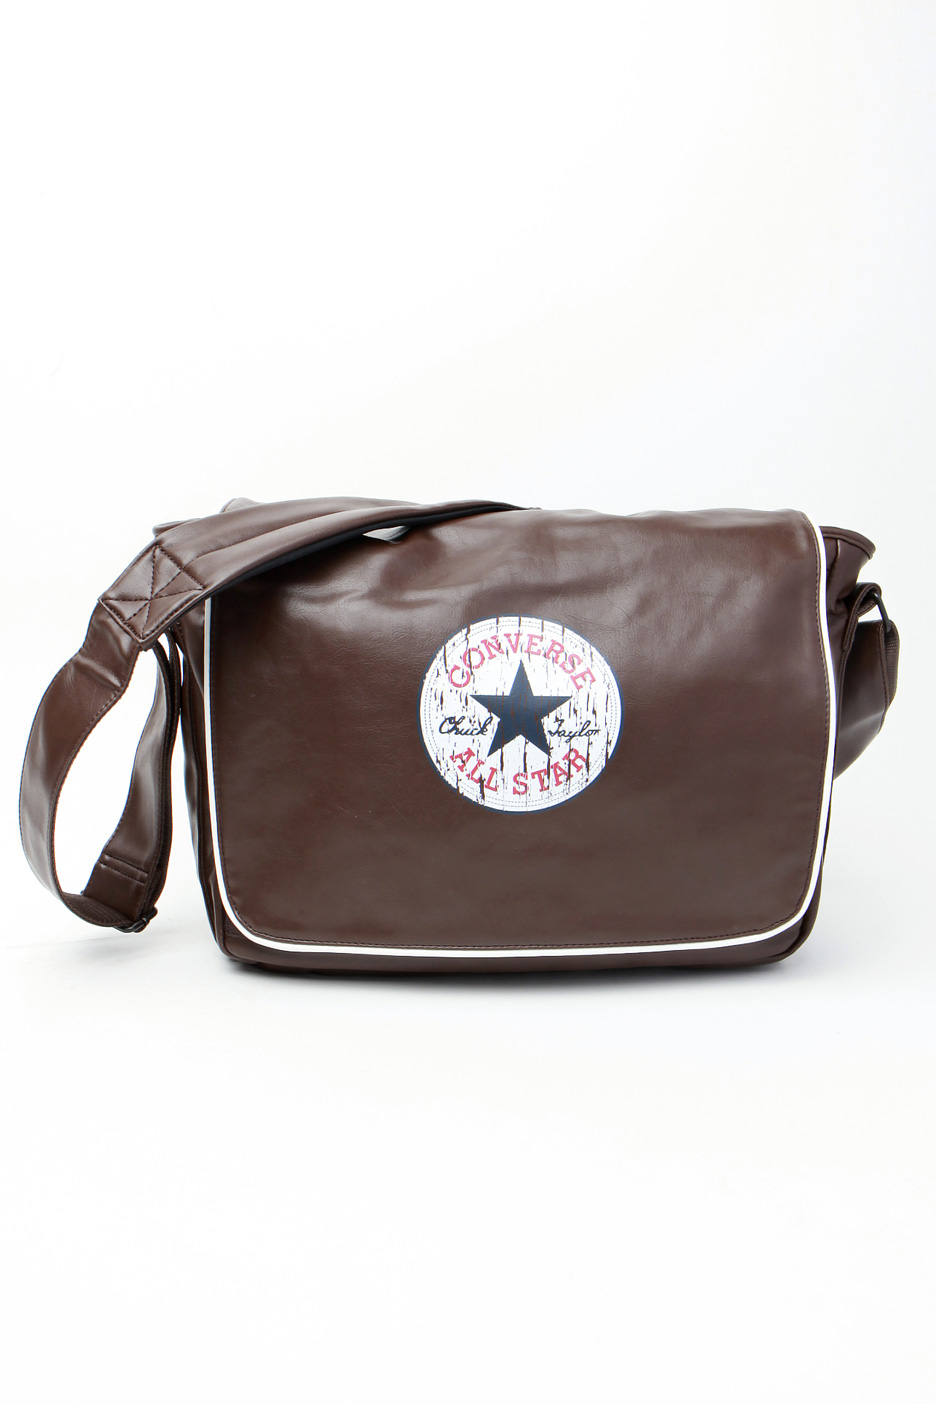 f3c04441261b Converse - Vintage Patch Shoulder Chocolate Brown - Bag - Impericon.com  Worldwide